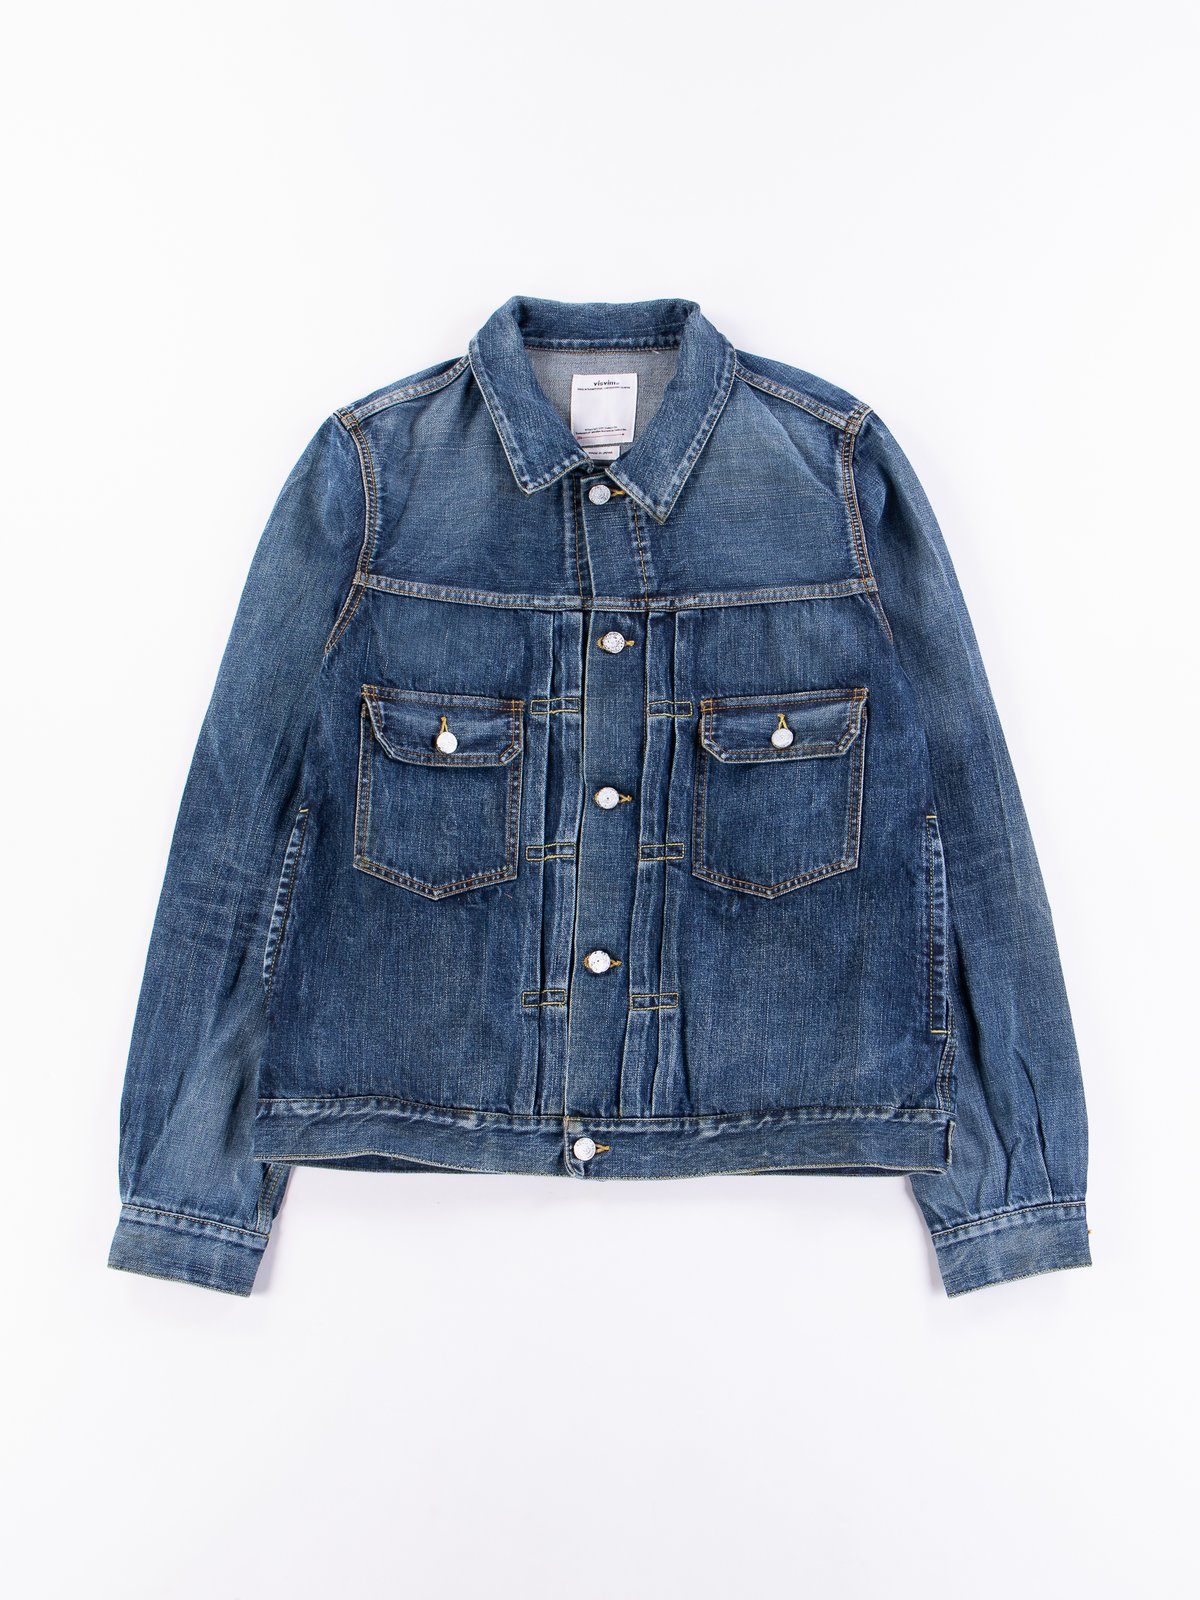 Dry Damaged SS 101 Denim Jacket - Image 1